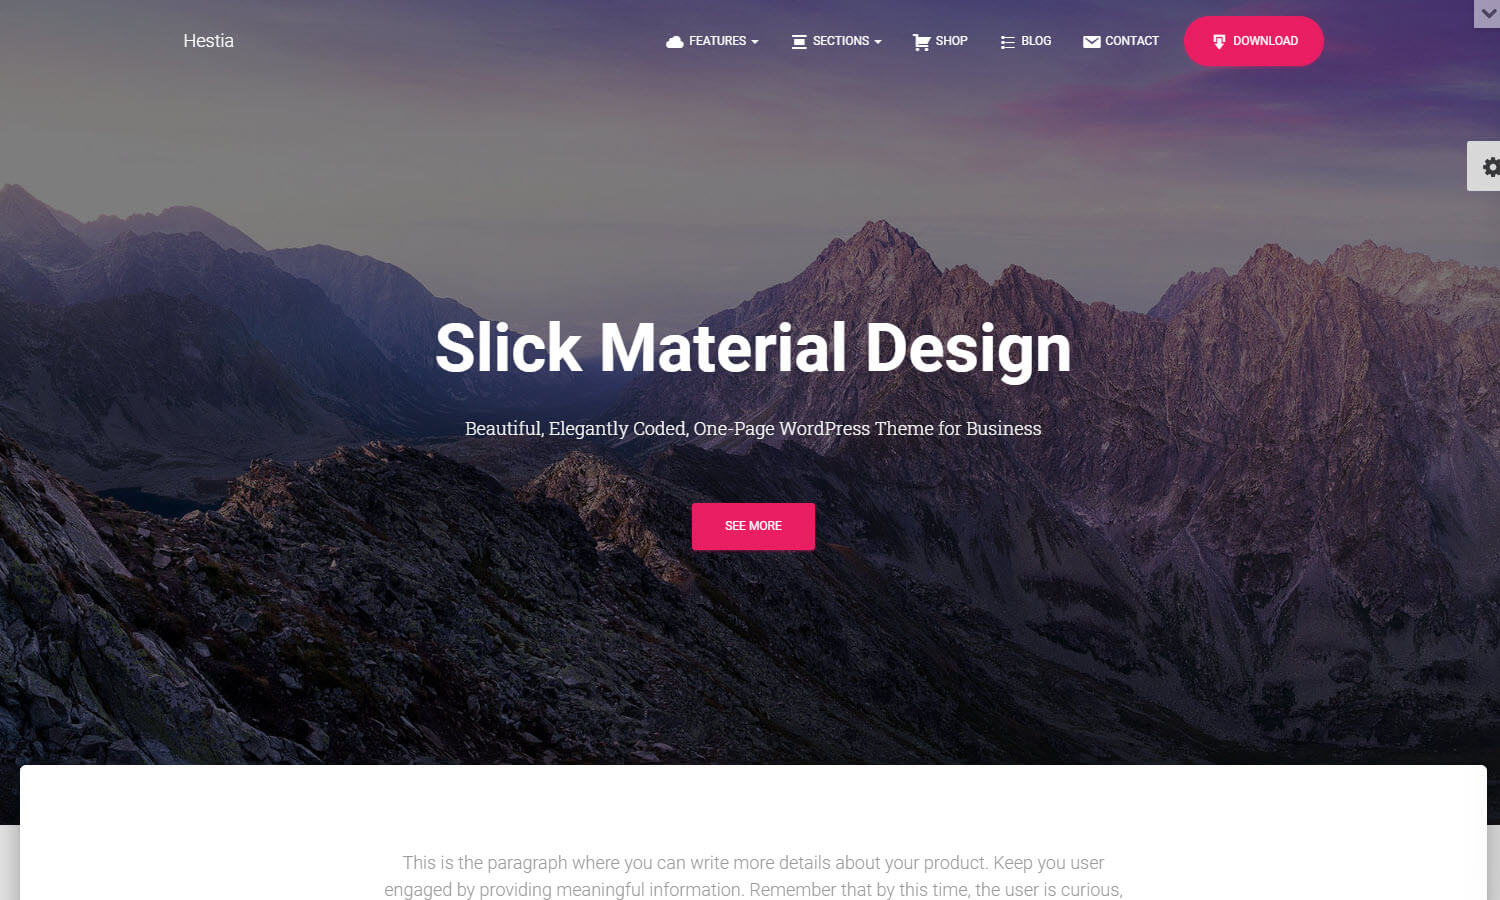 Hestia screenshot